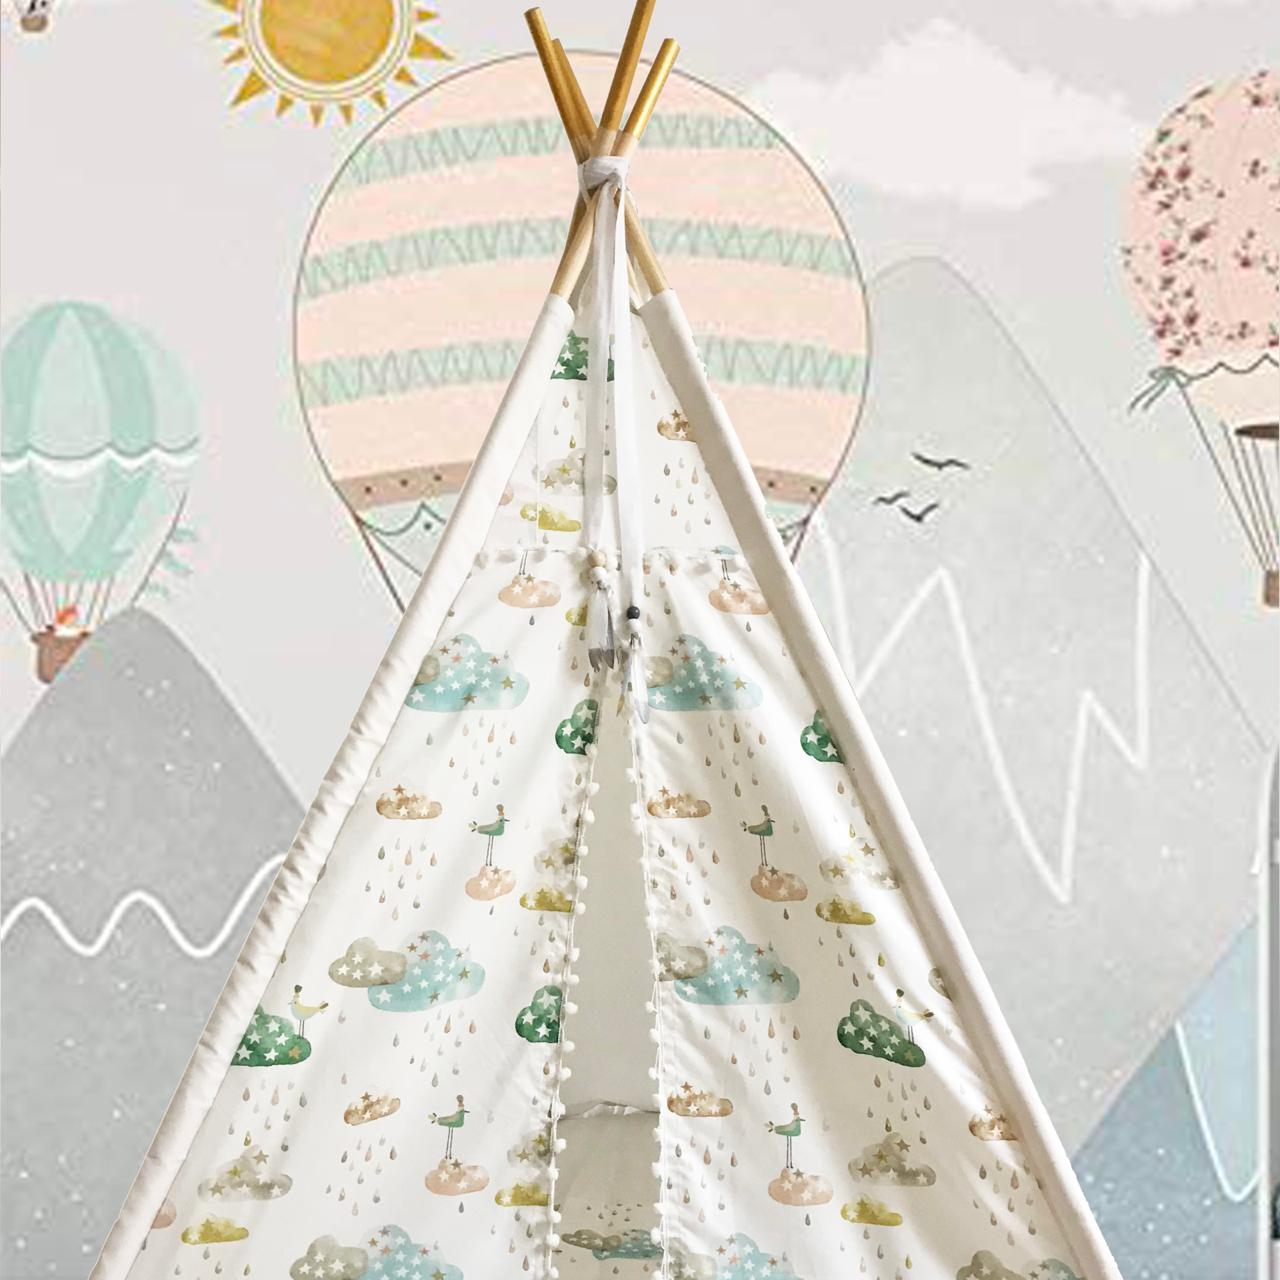 Star motif teepee for sale